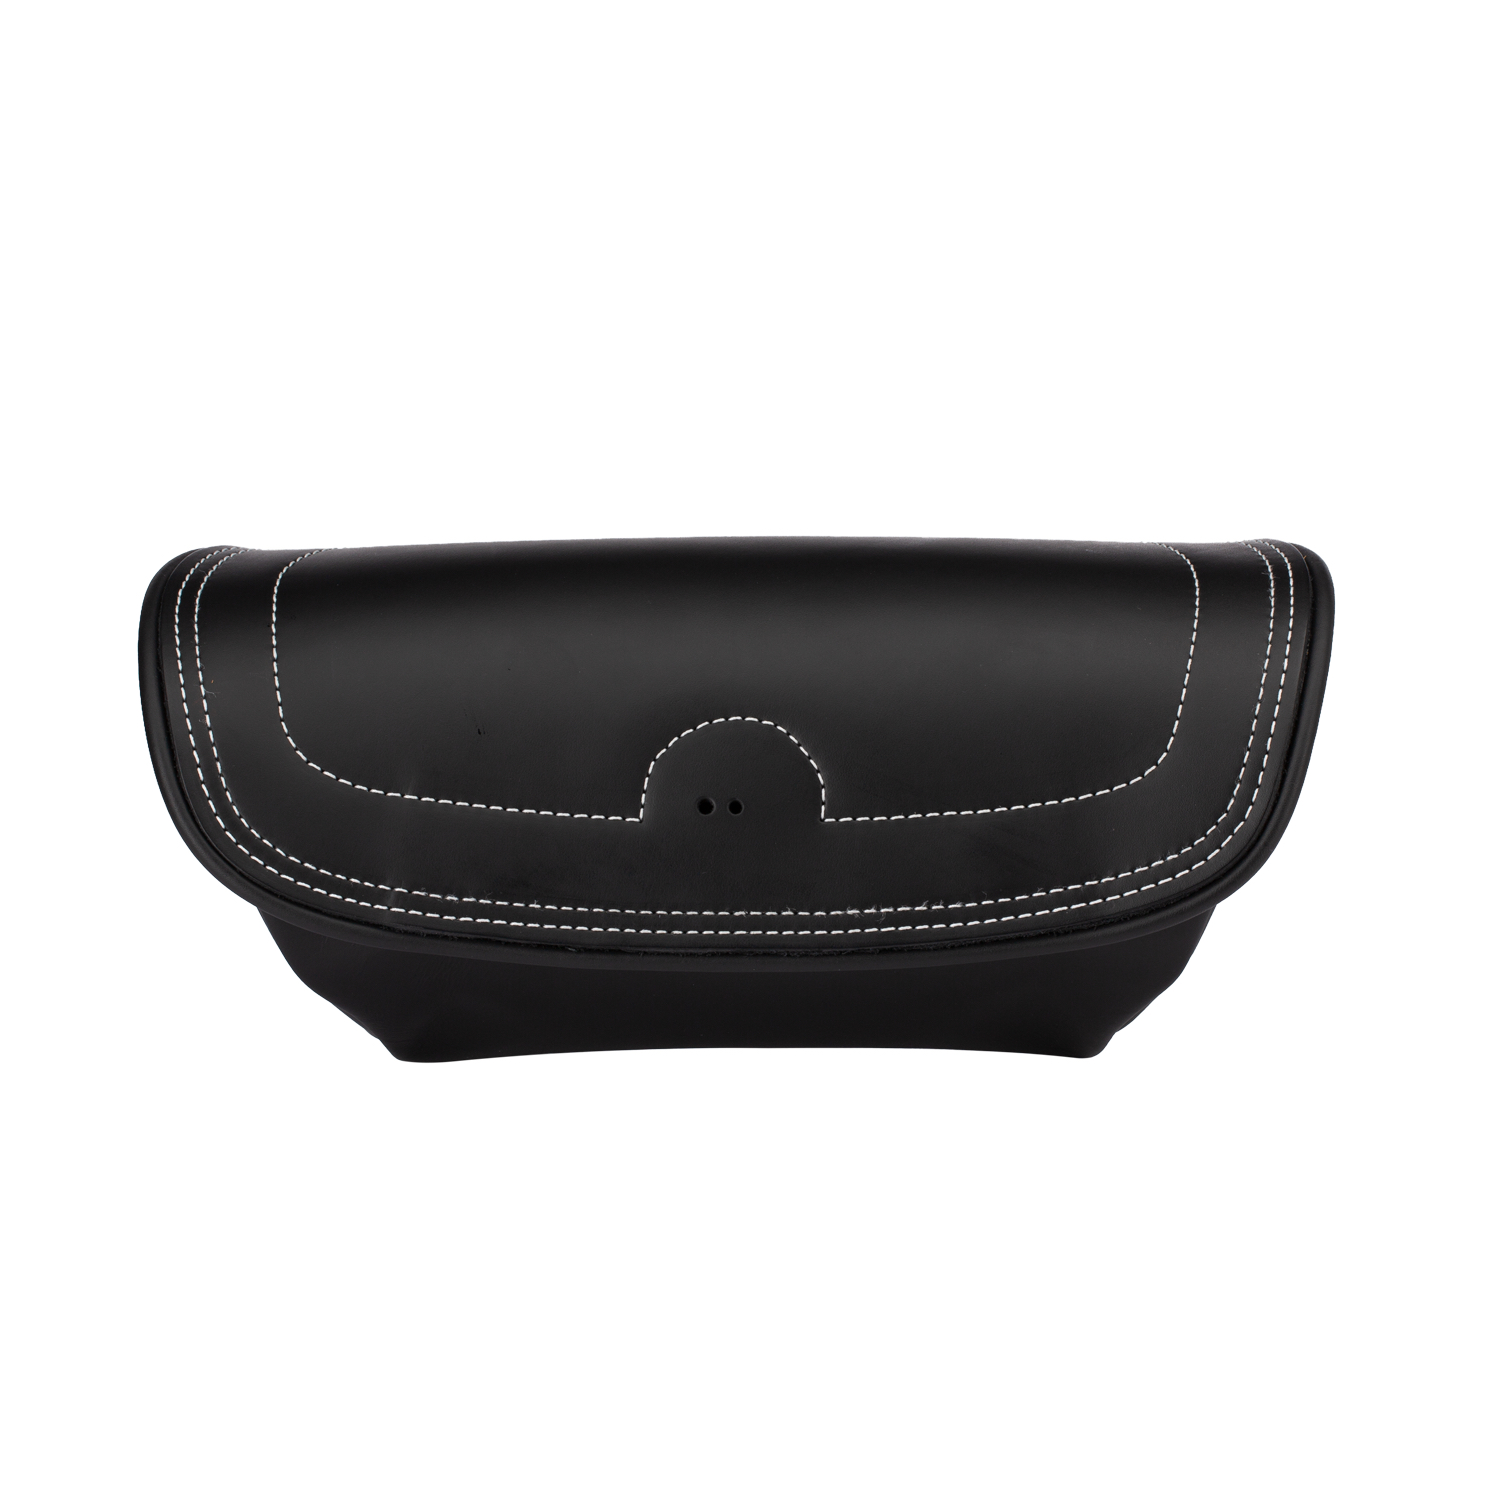 Genuine Leather Handlebar Bag - Black